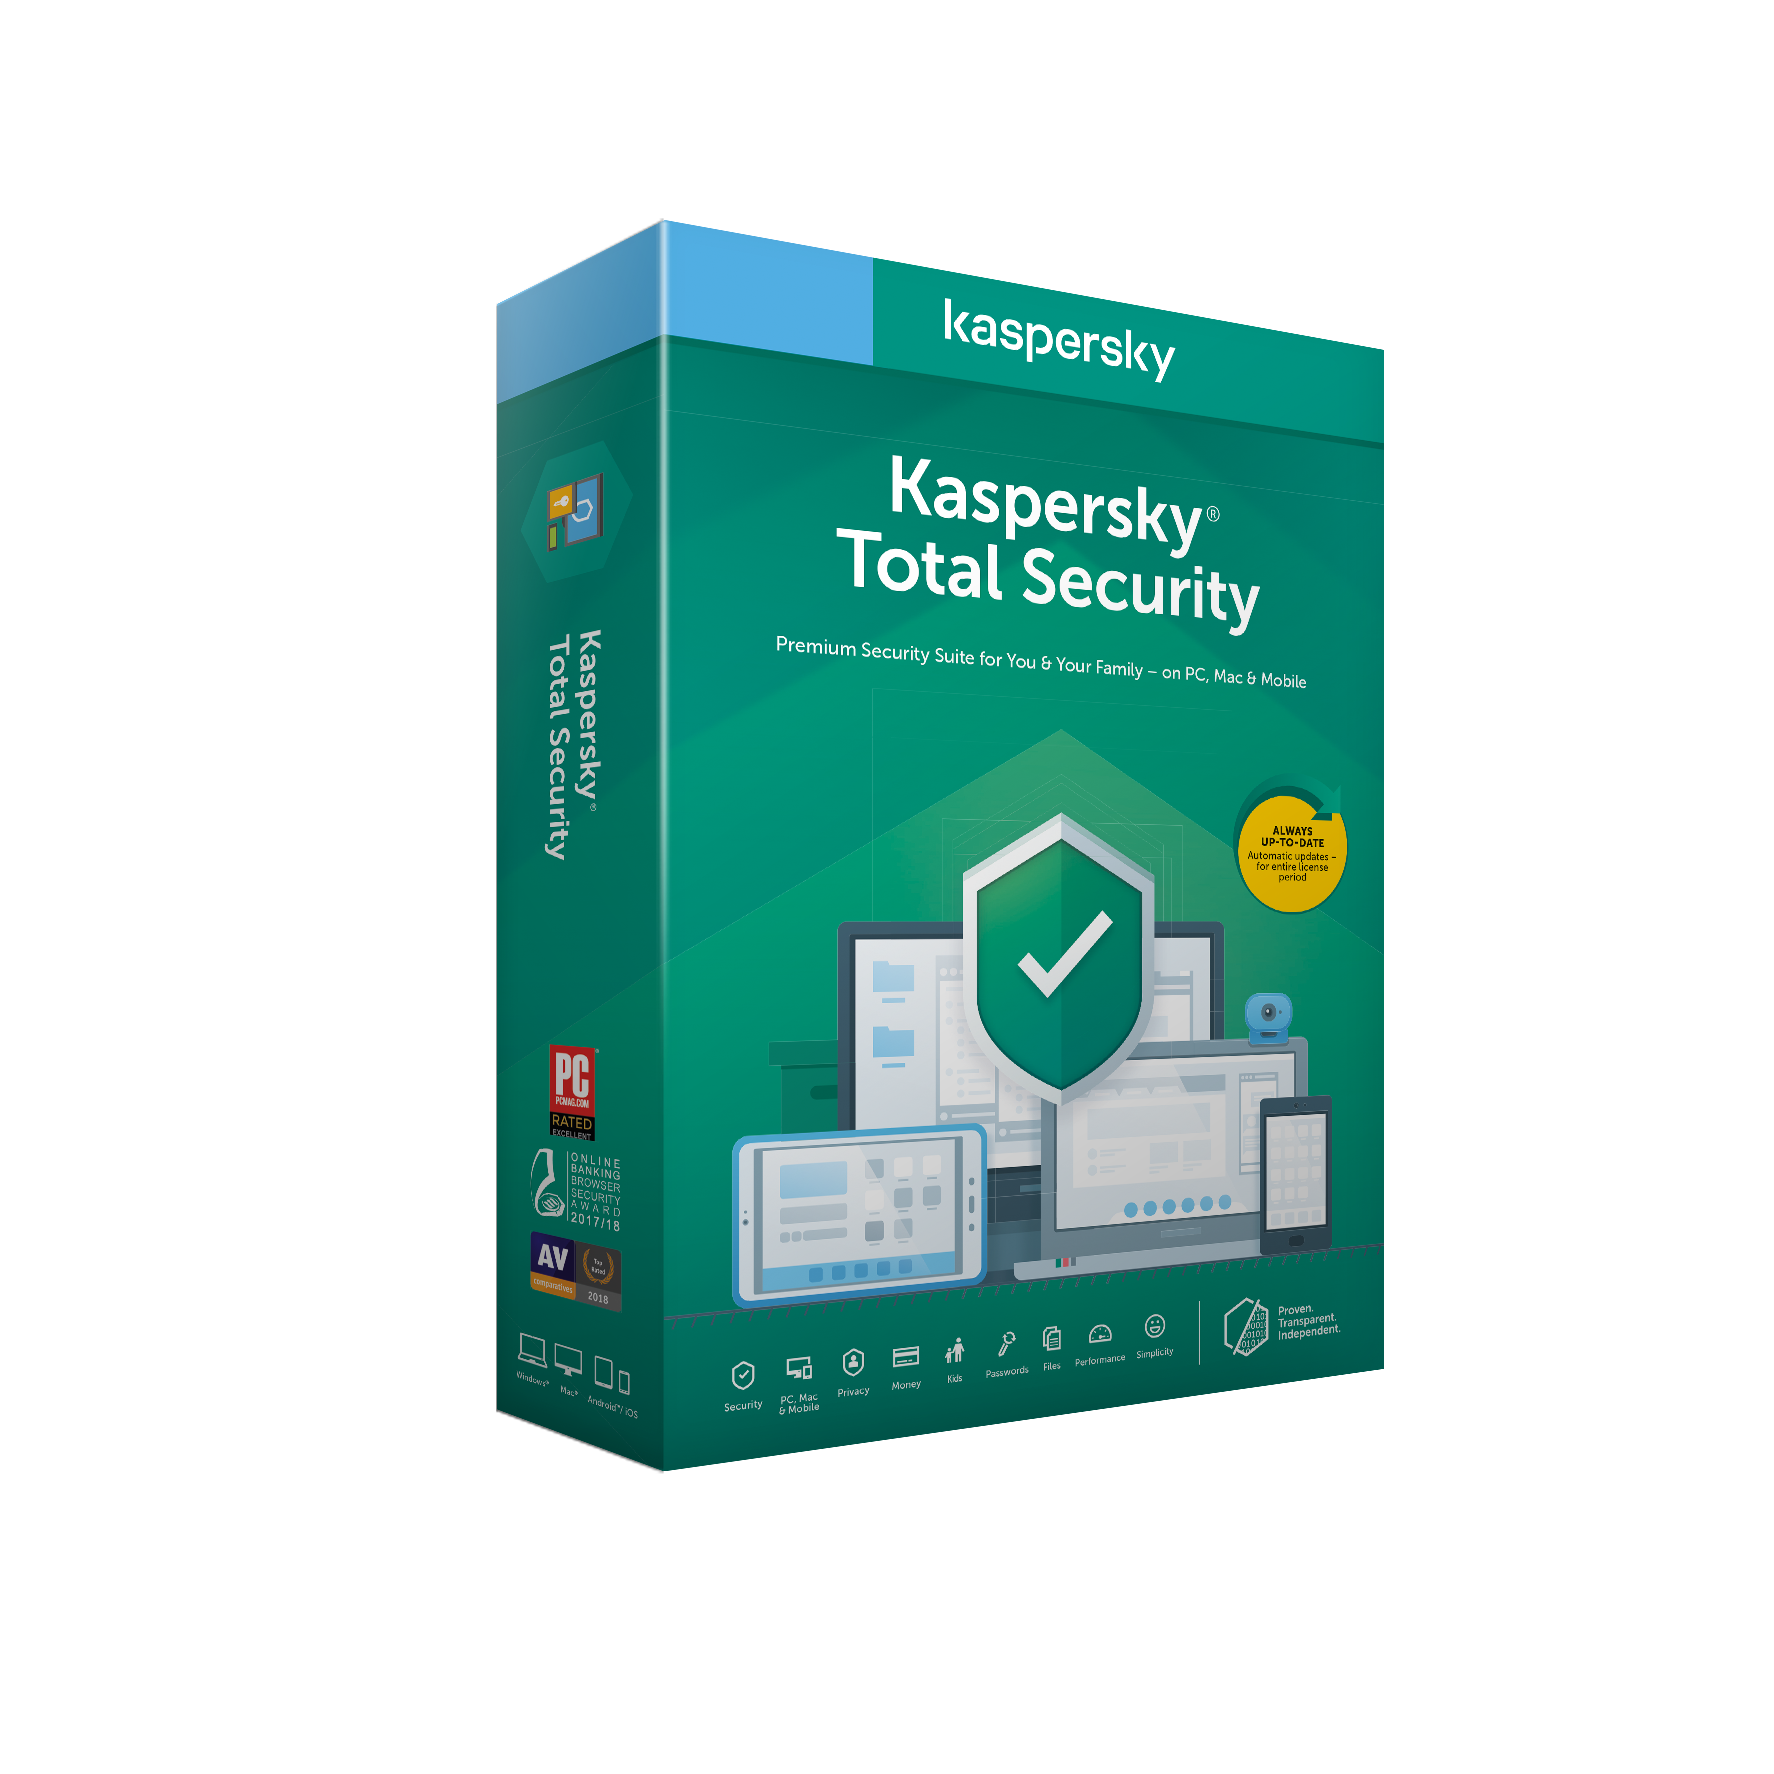 Kaspersky Total Security 4x 1 rok Obnova